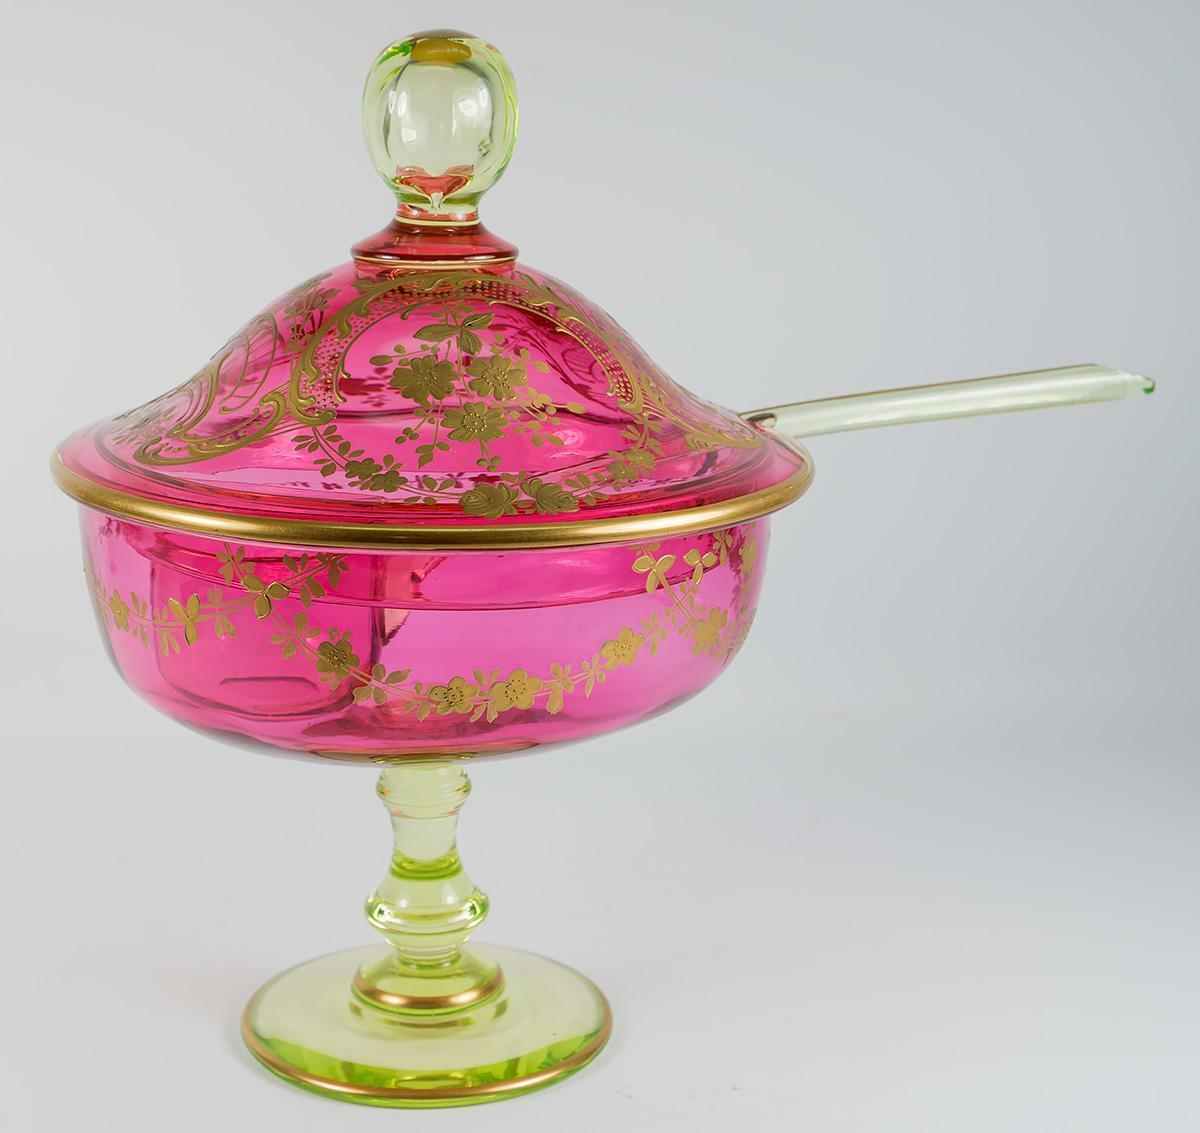 Antique French Raised Gold Enameled Punch Bowl, Ladle, St. Louis, Pink & Green